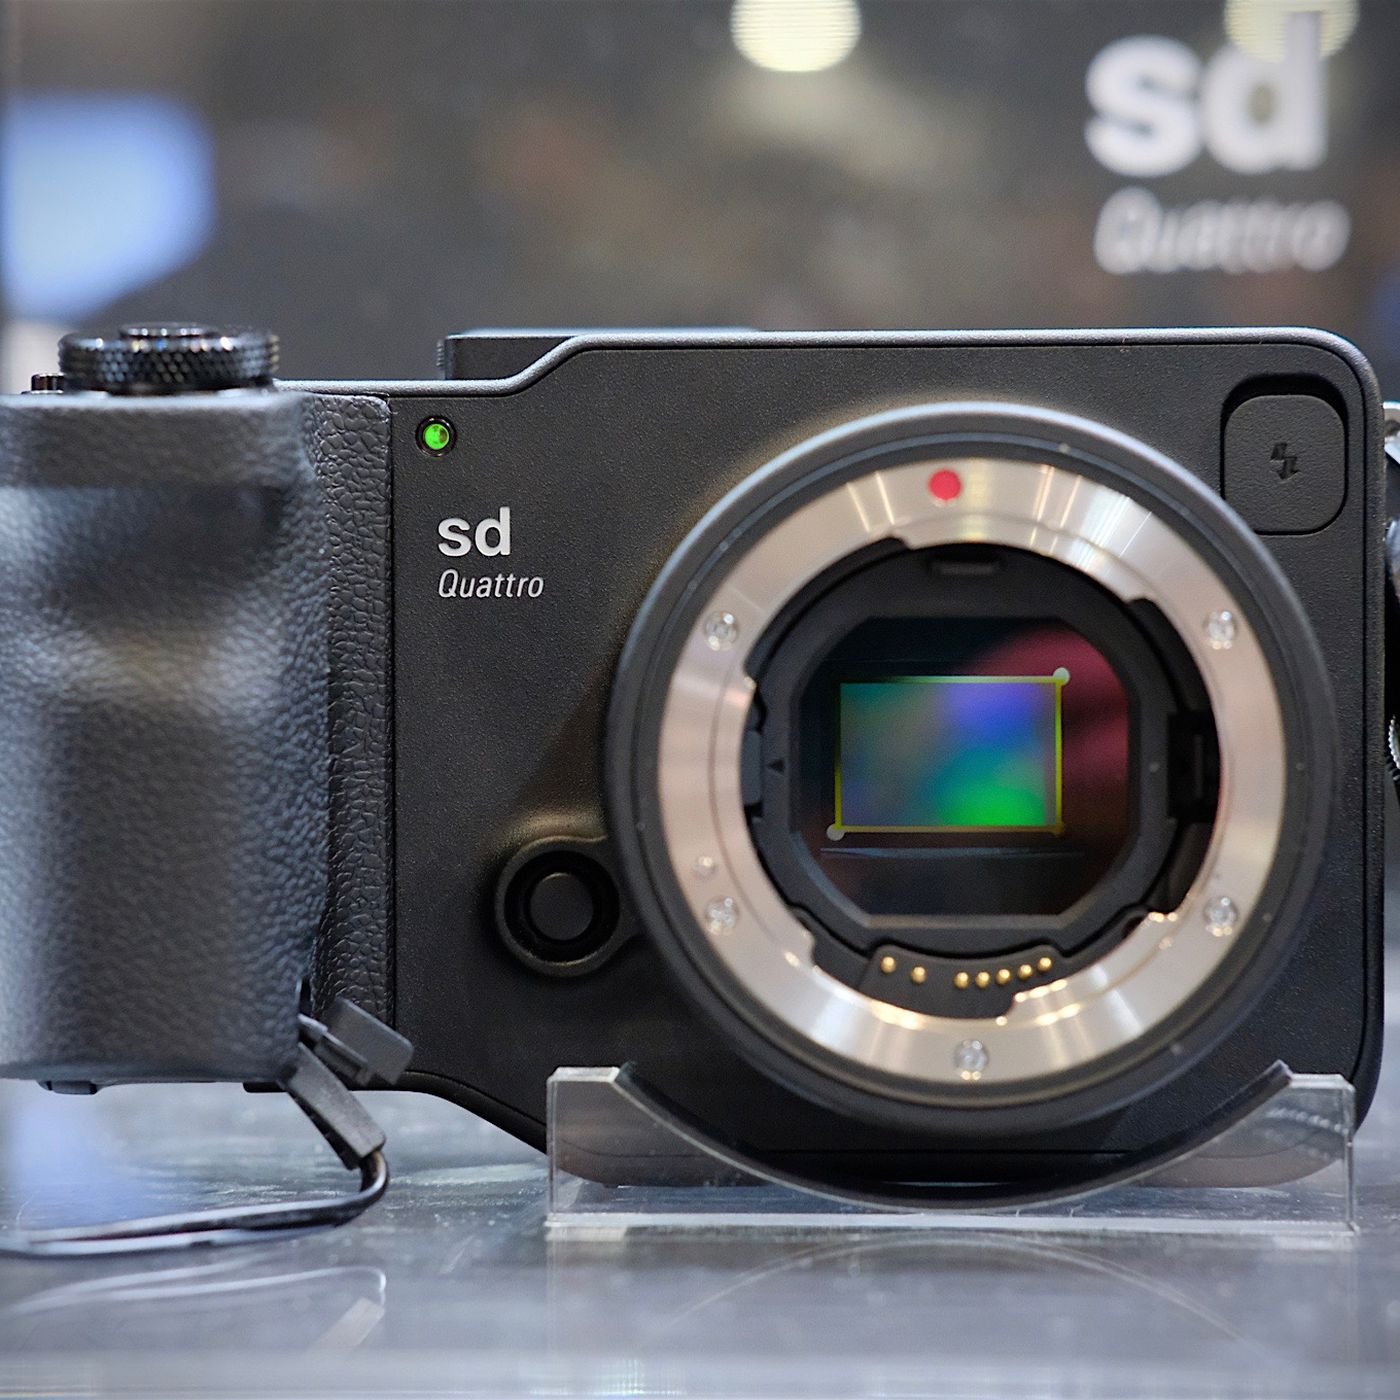 The new Sigma Quattro is the oddest camera since the last Sigma